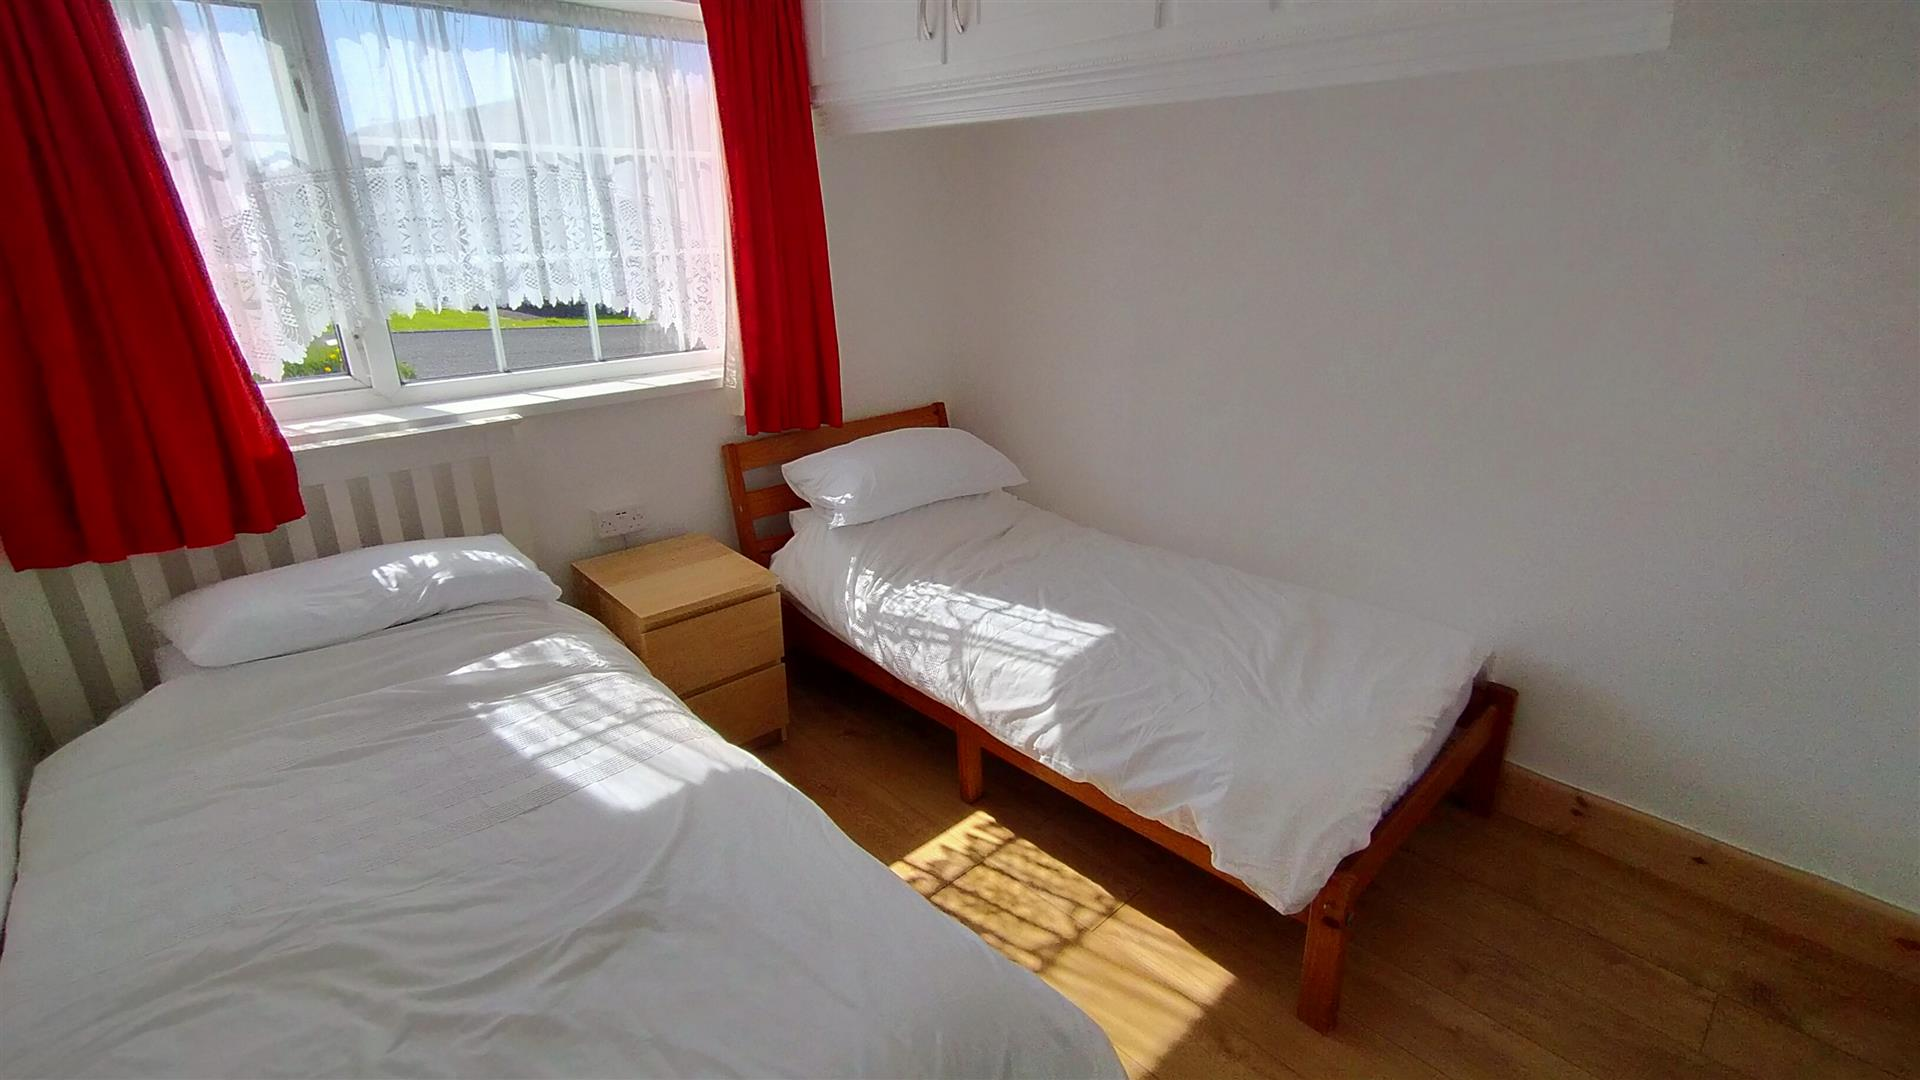 Gower Holiday Village, Scurlage, SA3 1AY